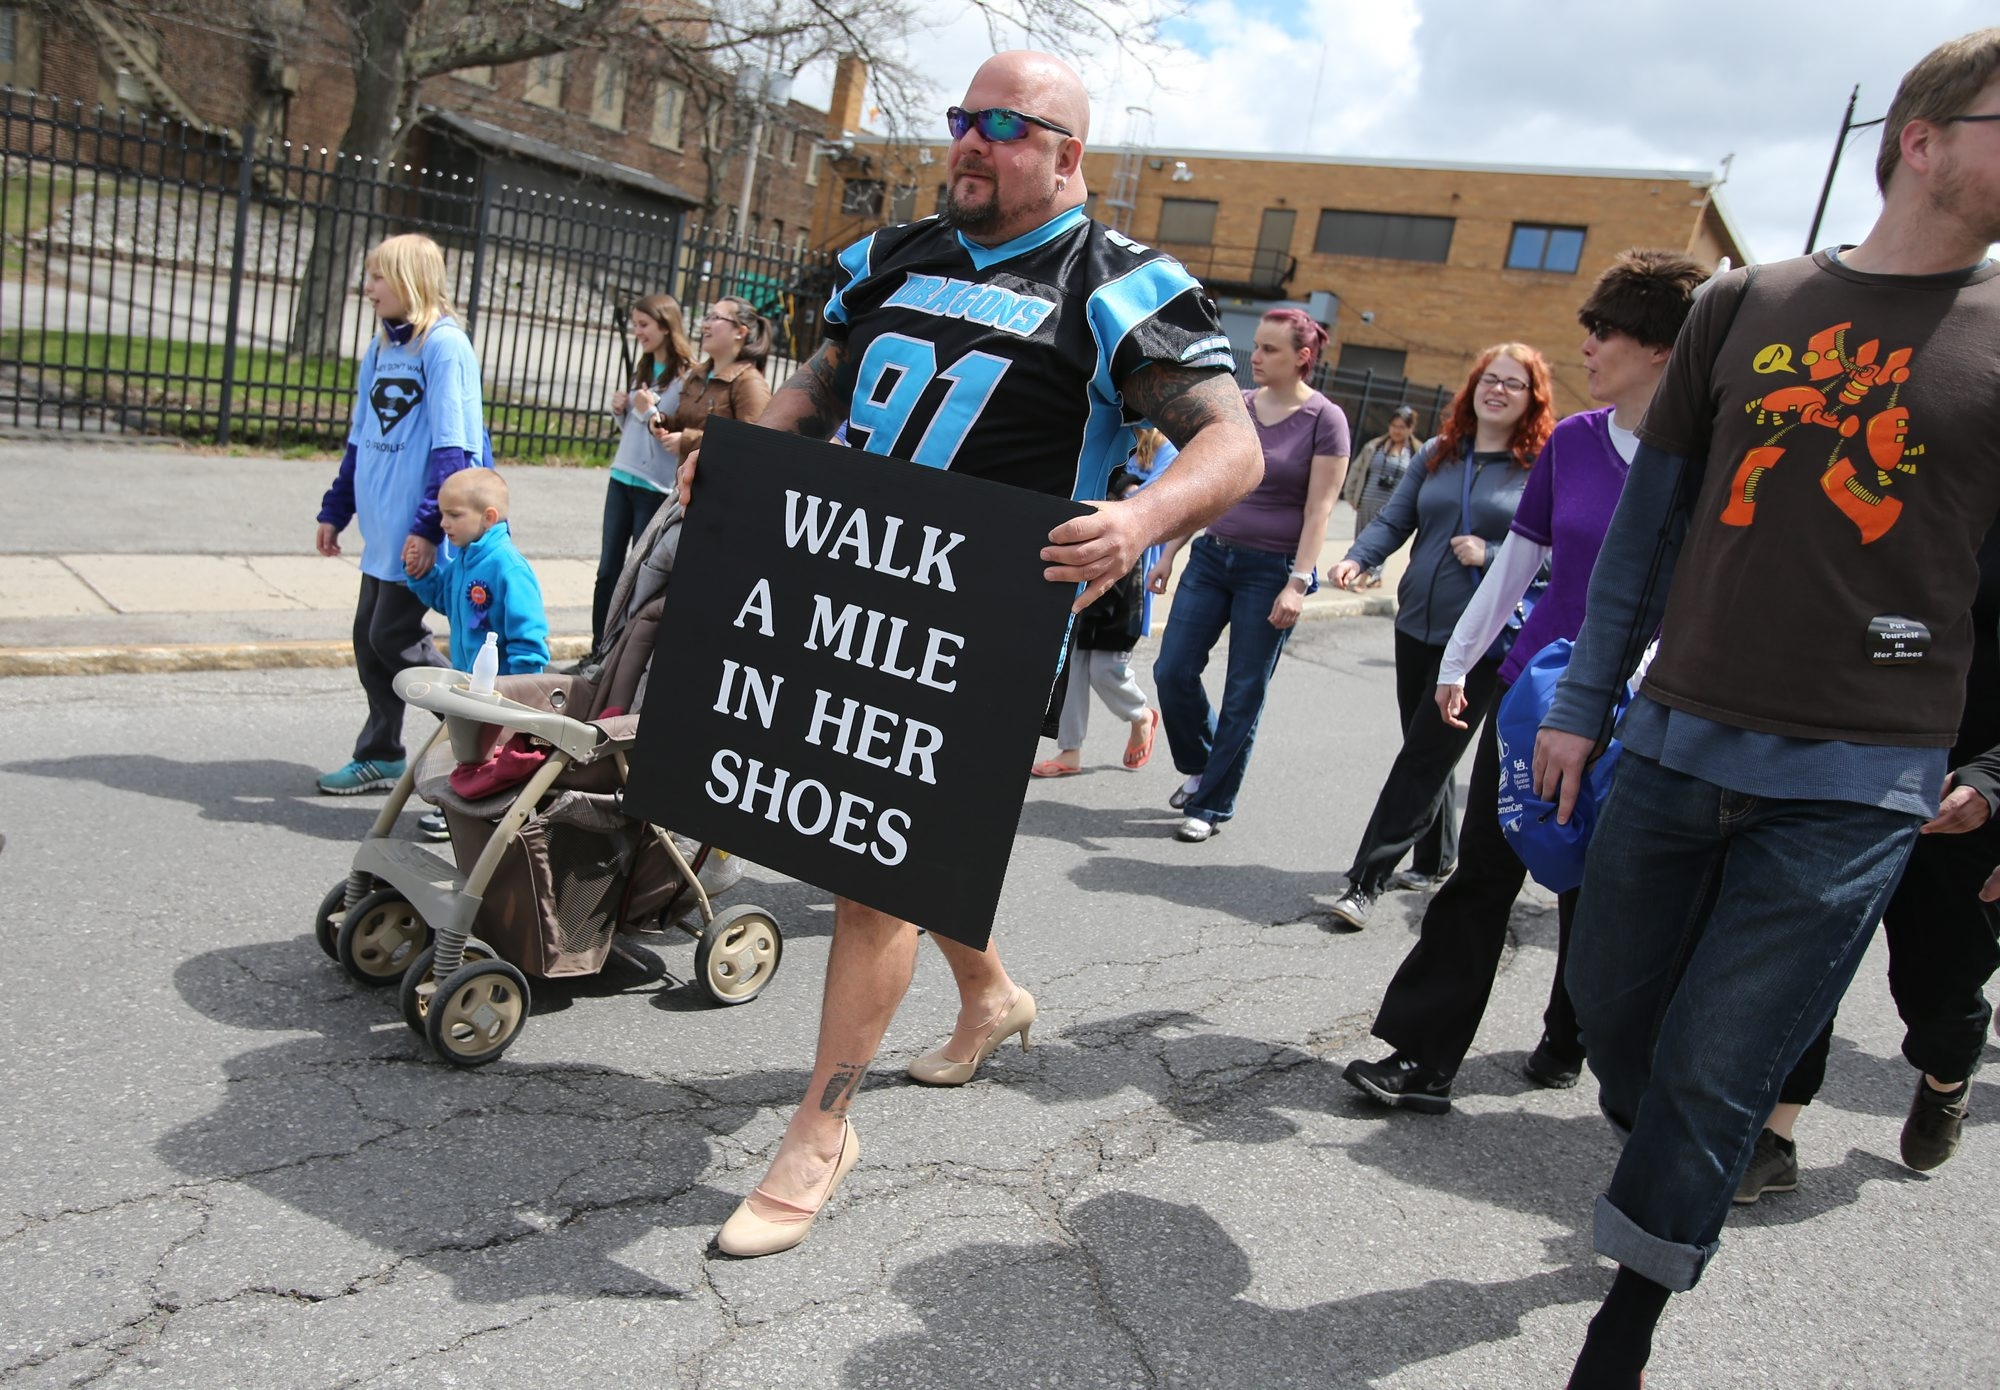 Mike Coe wears some stylish pumps while participating in the Walk a Mile in Her Shoes event.